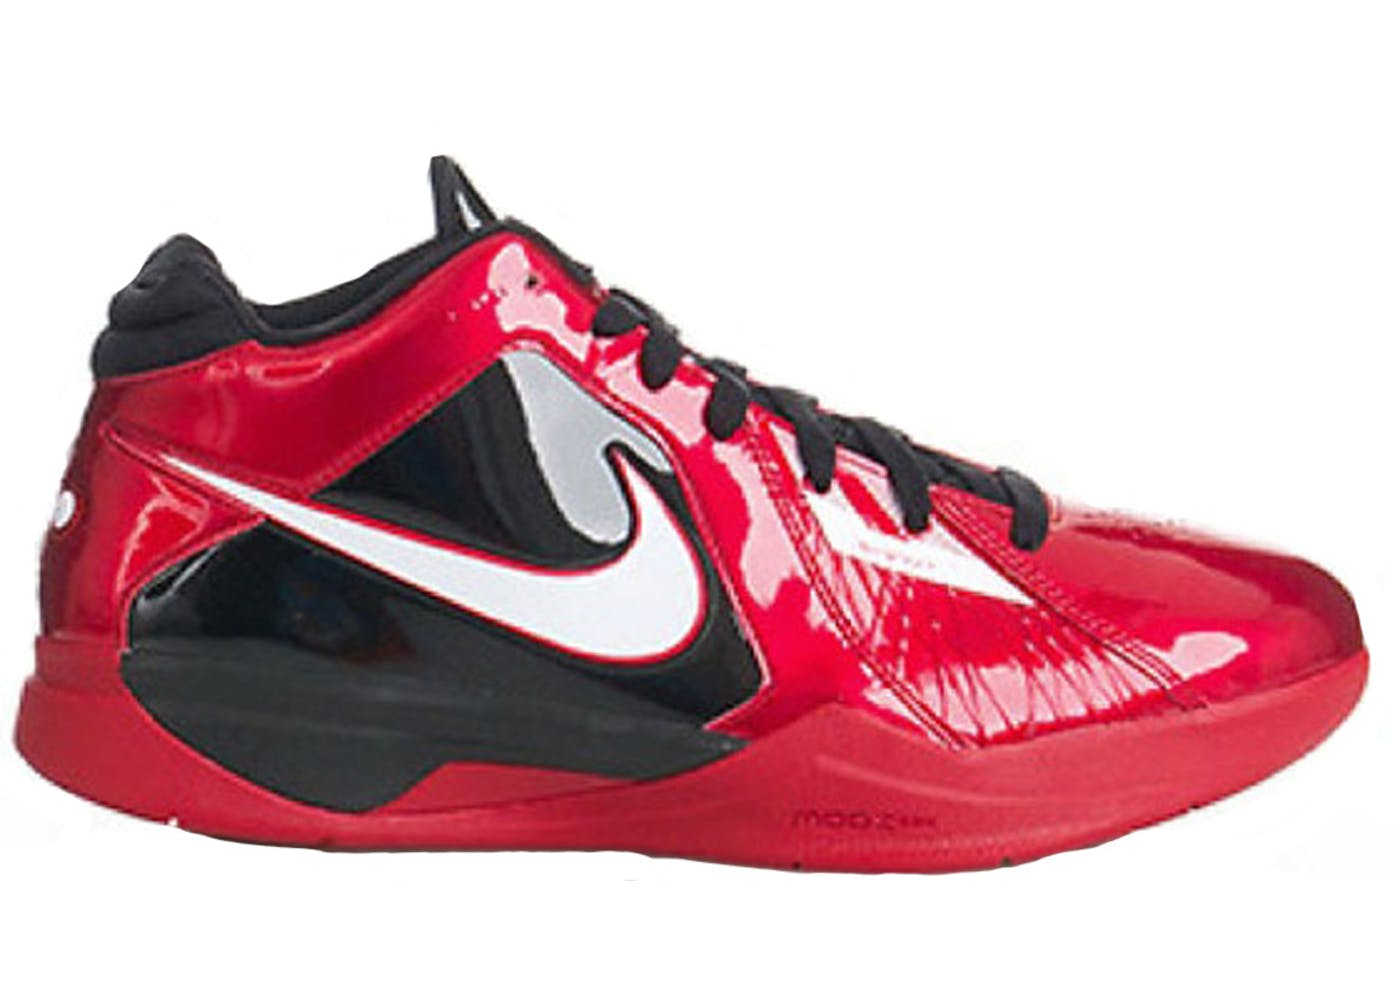 a3d041cbffba ... Nike Zoom KD III Mike Miller Playoff PE - SneakerNews.com KD 3 Mike  Miller ...